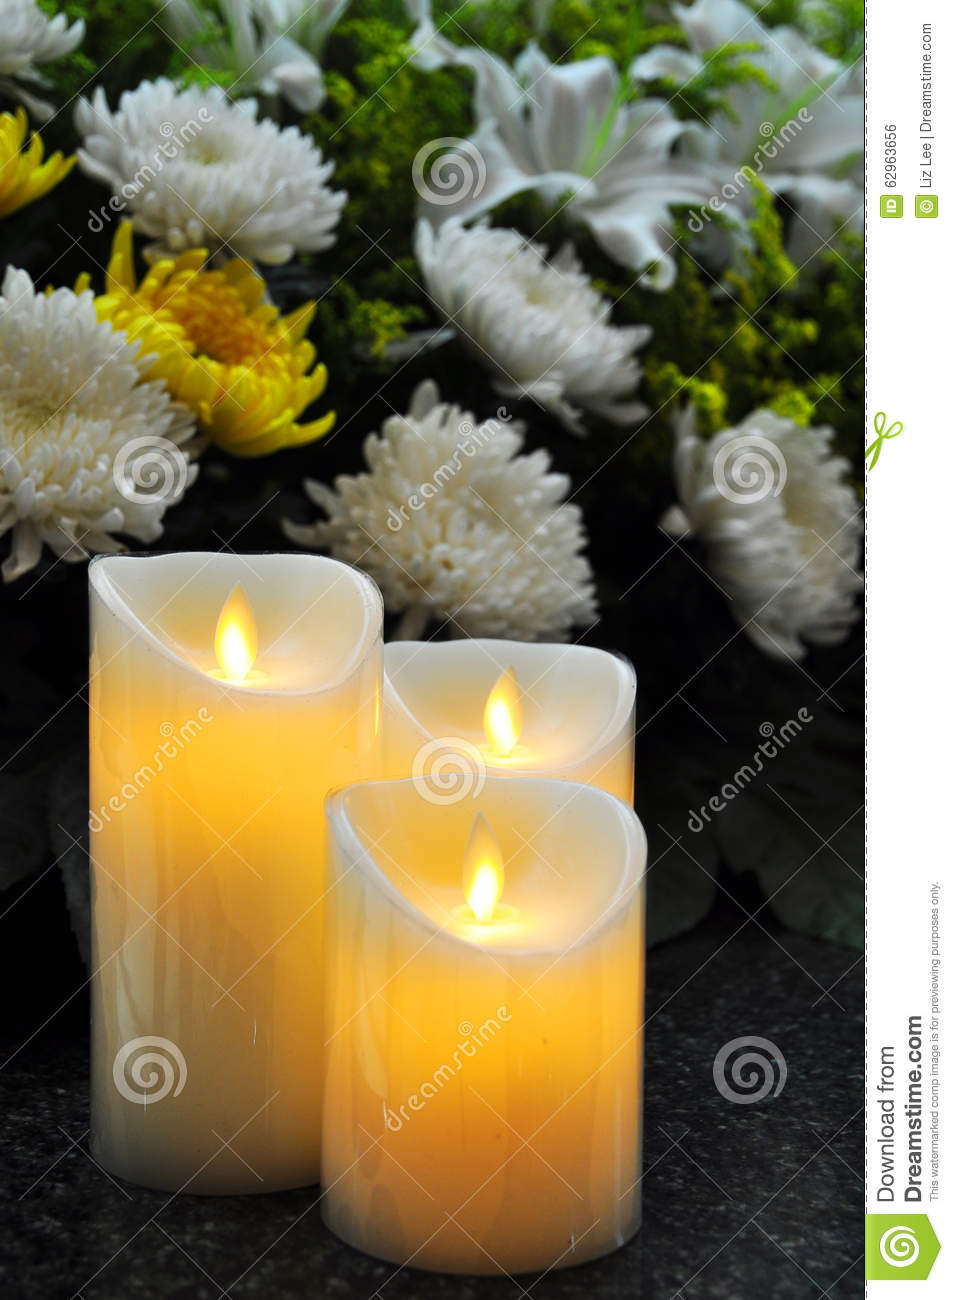 Funeral Flowers And Candles Stock Photo Image Of Ceremonial Death